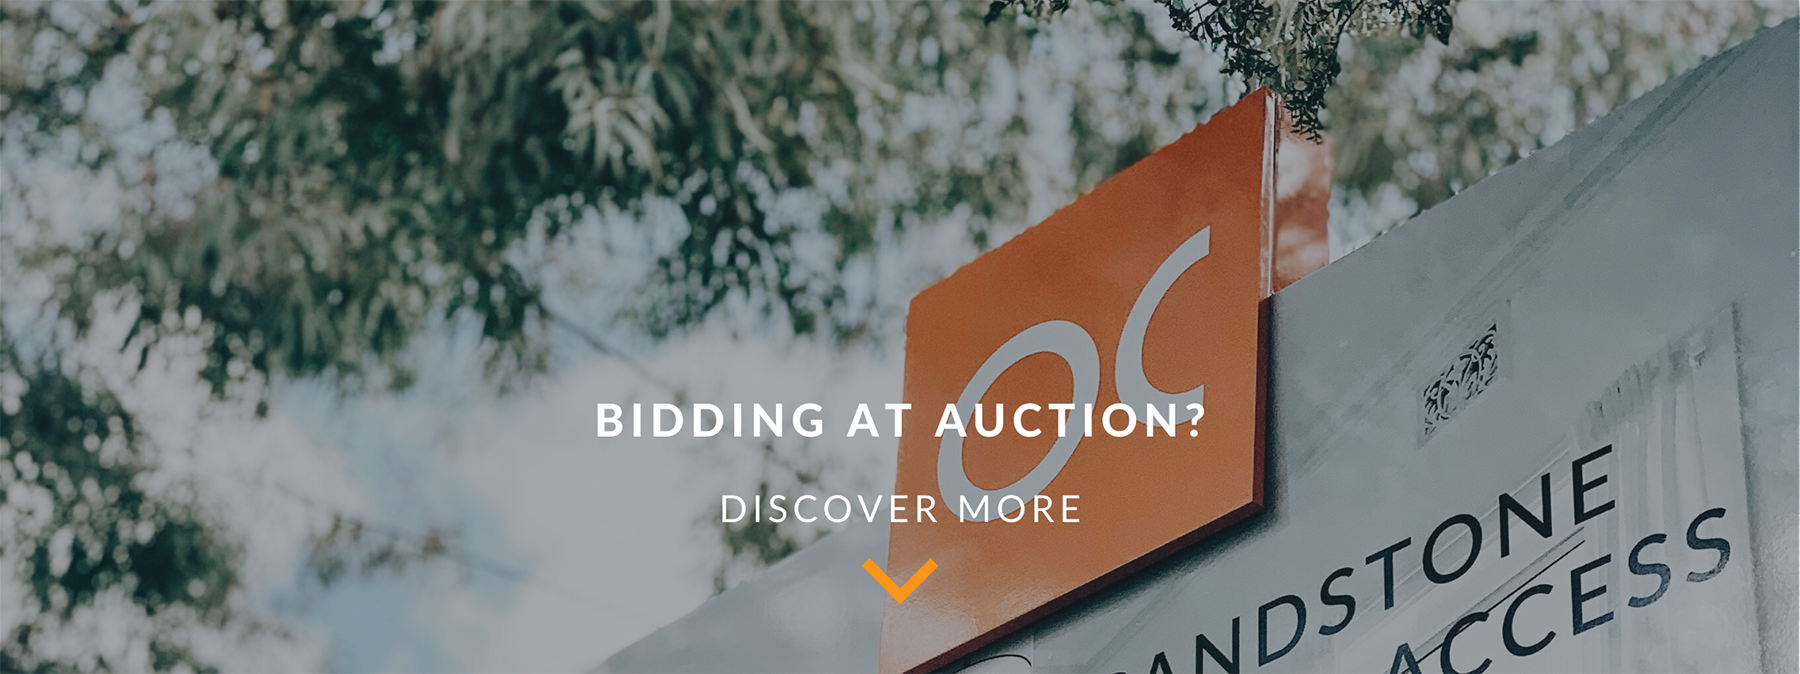 Auction bidders header image web